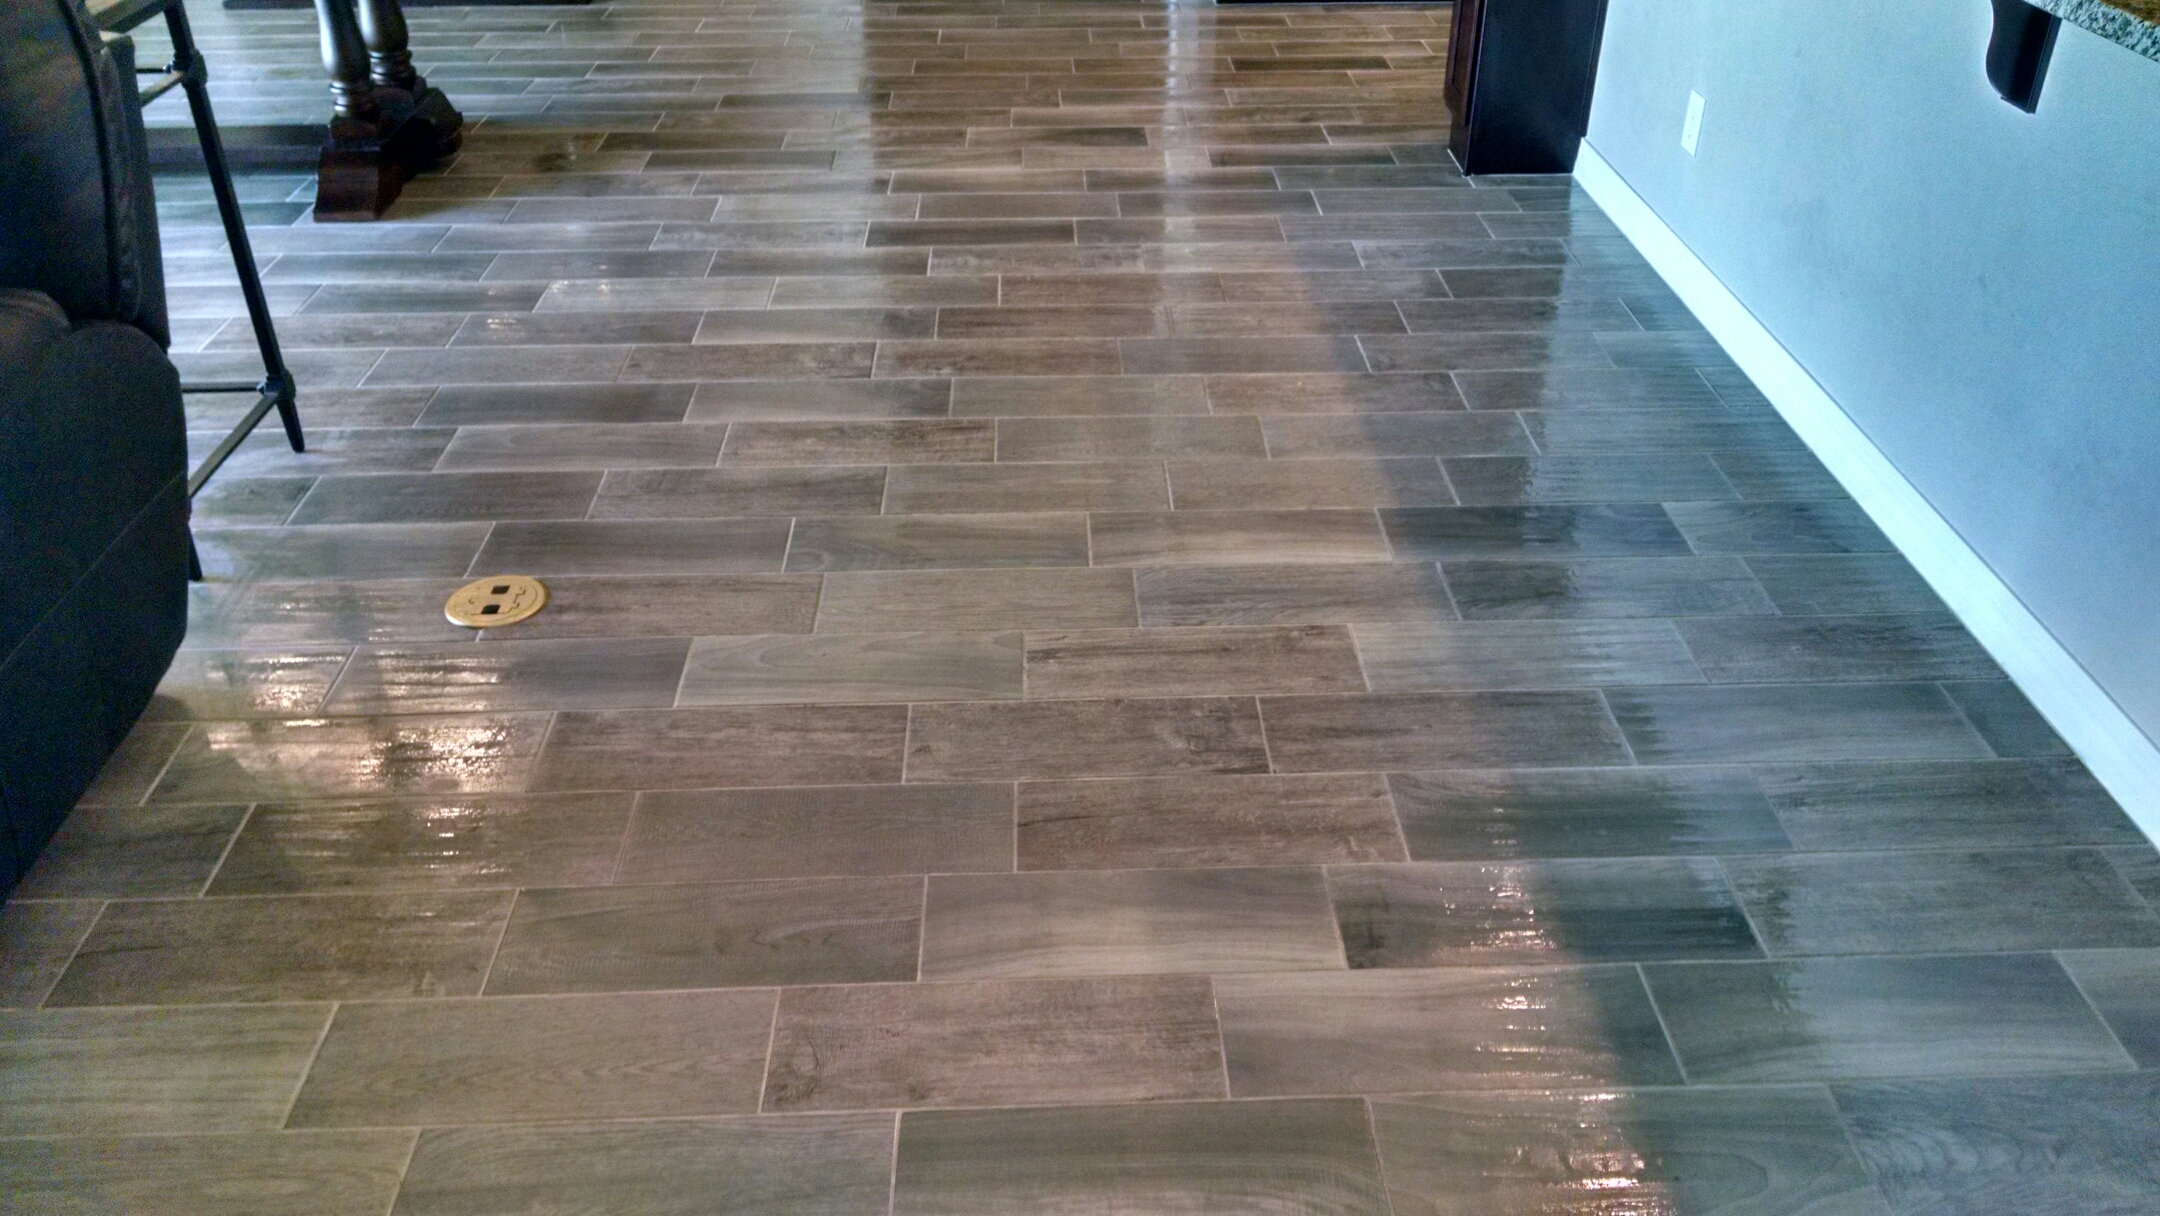 Mesa, AZ - Completed cleaning tile and grout for a new PANDA family, in Queen Creek, AZ 85142